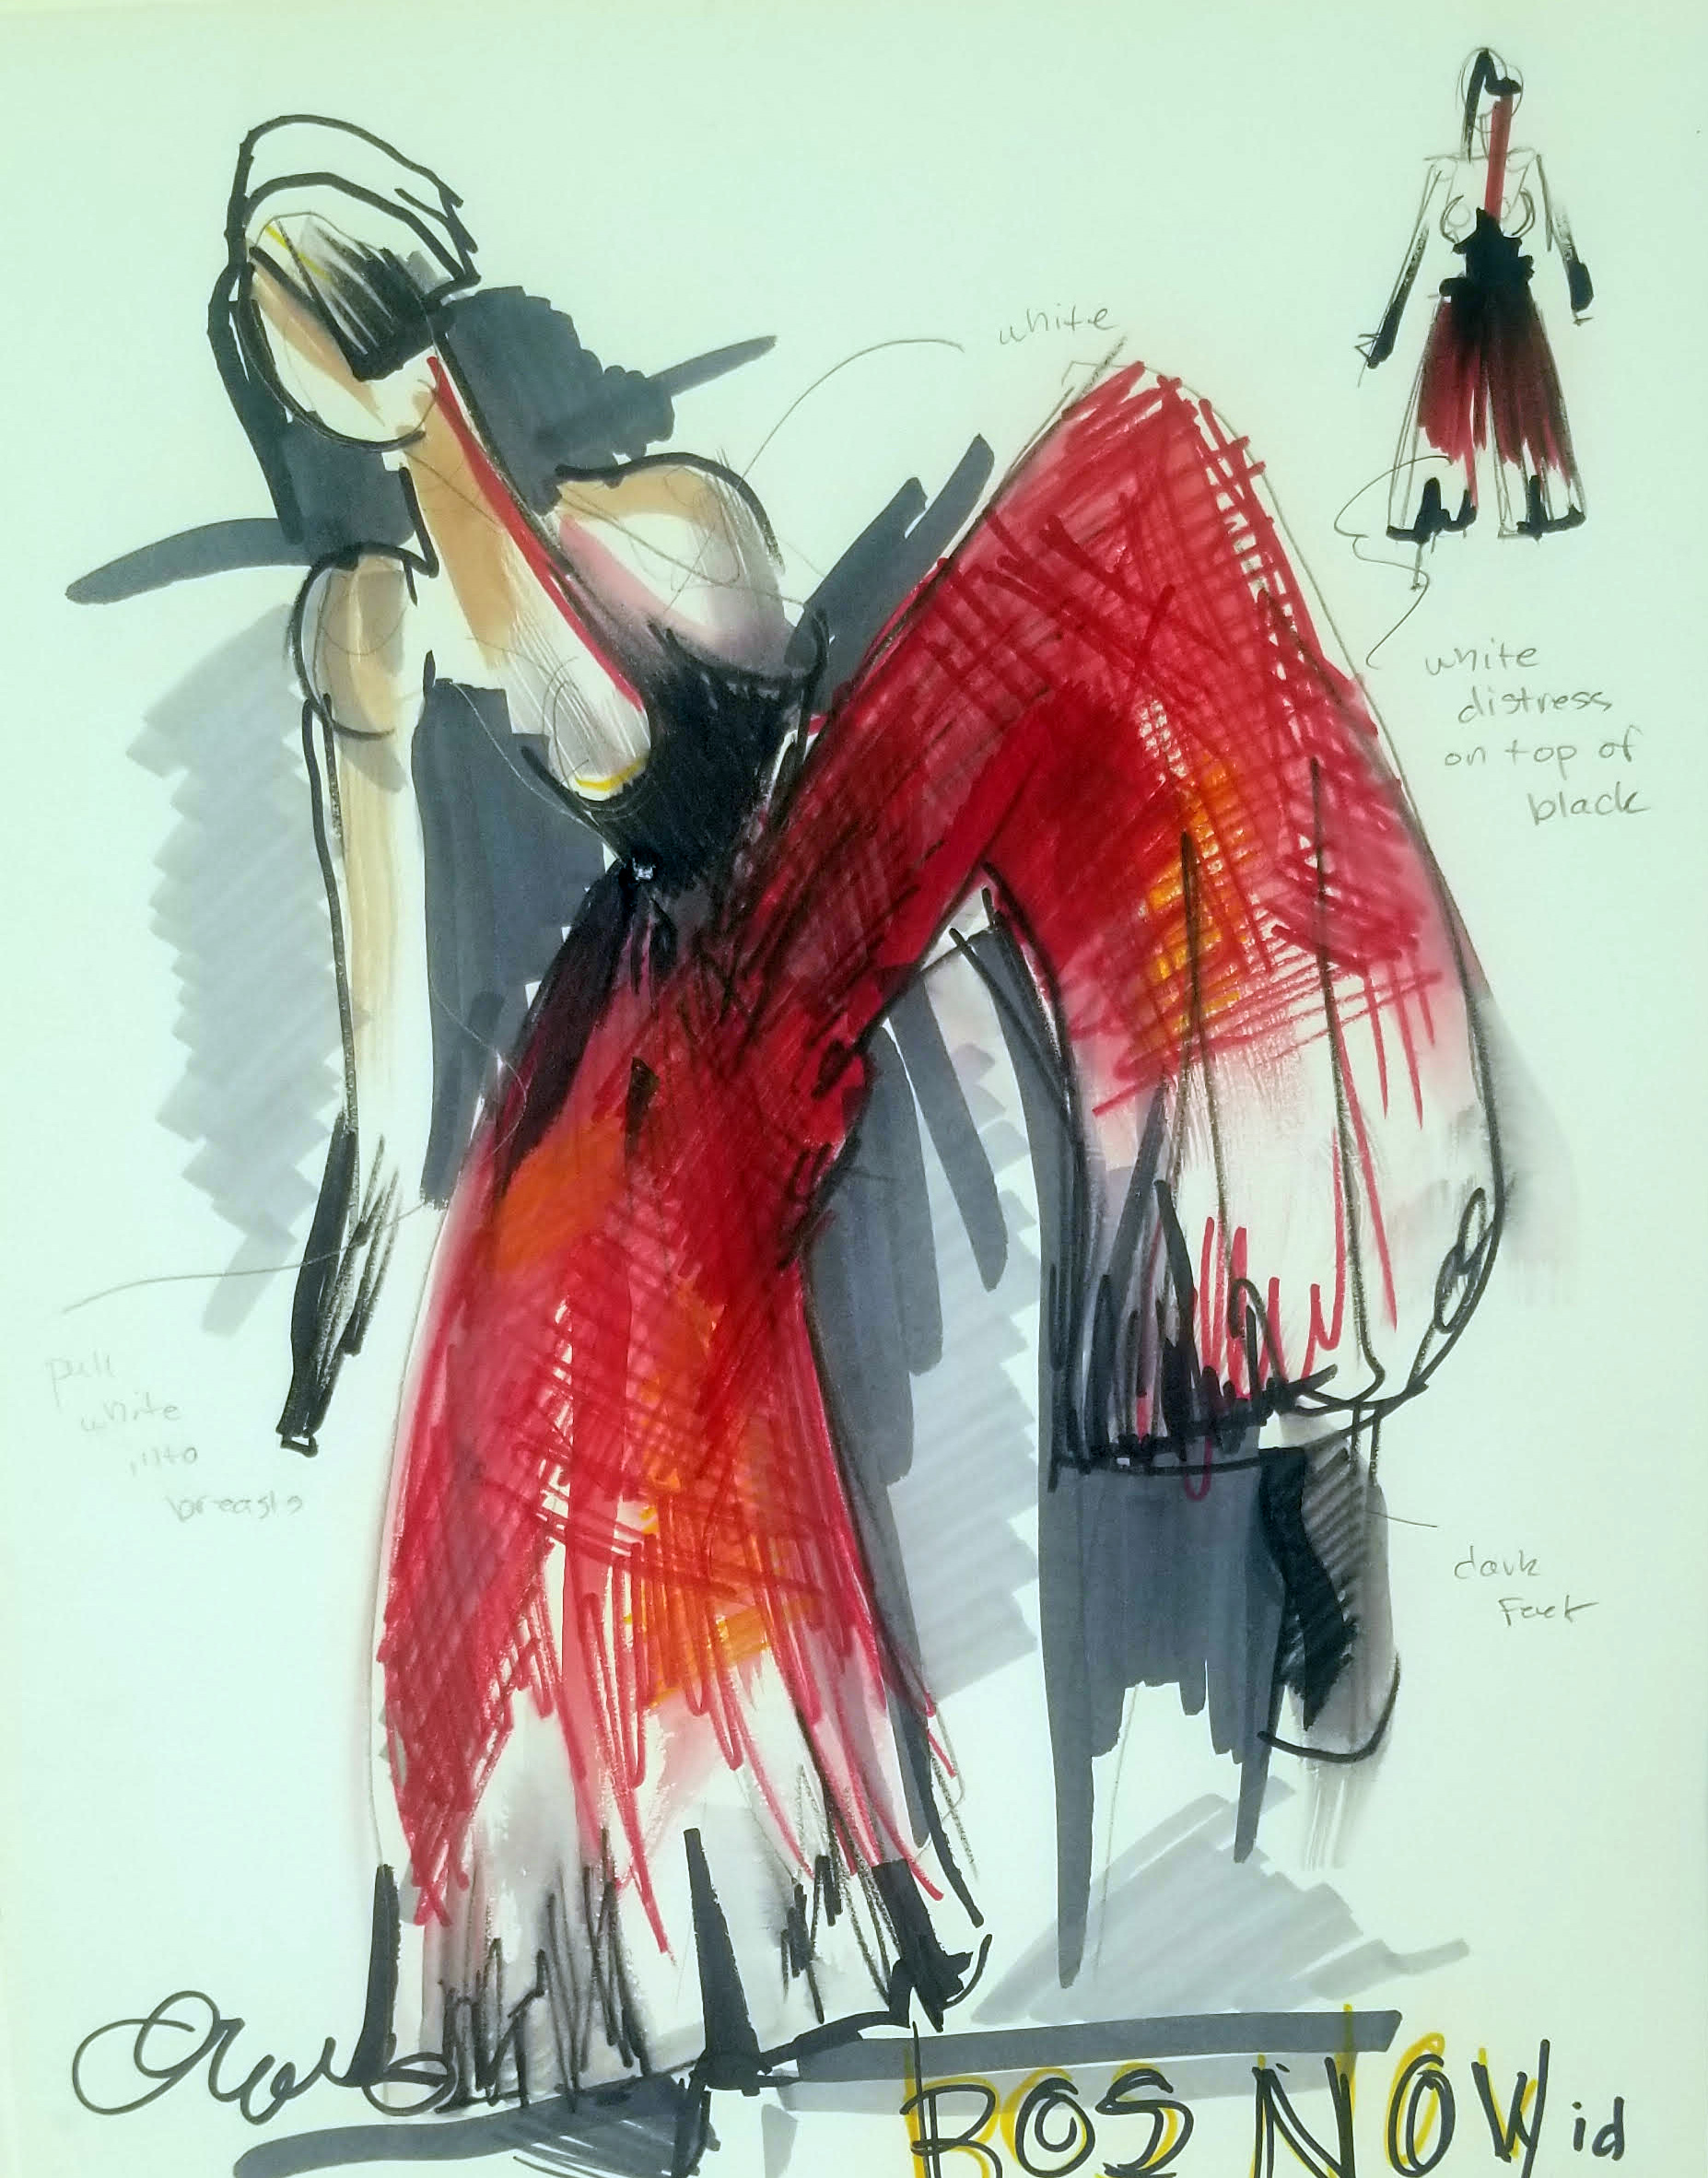 Drawings above by costume designer Mallory Prucha.